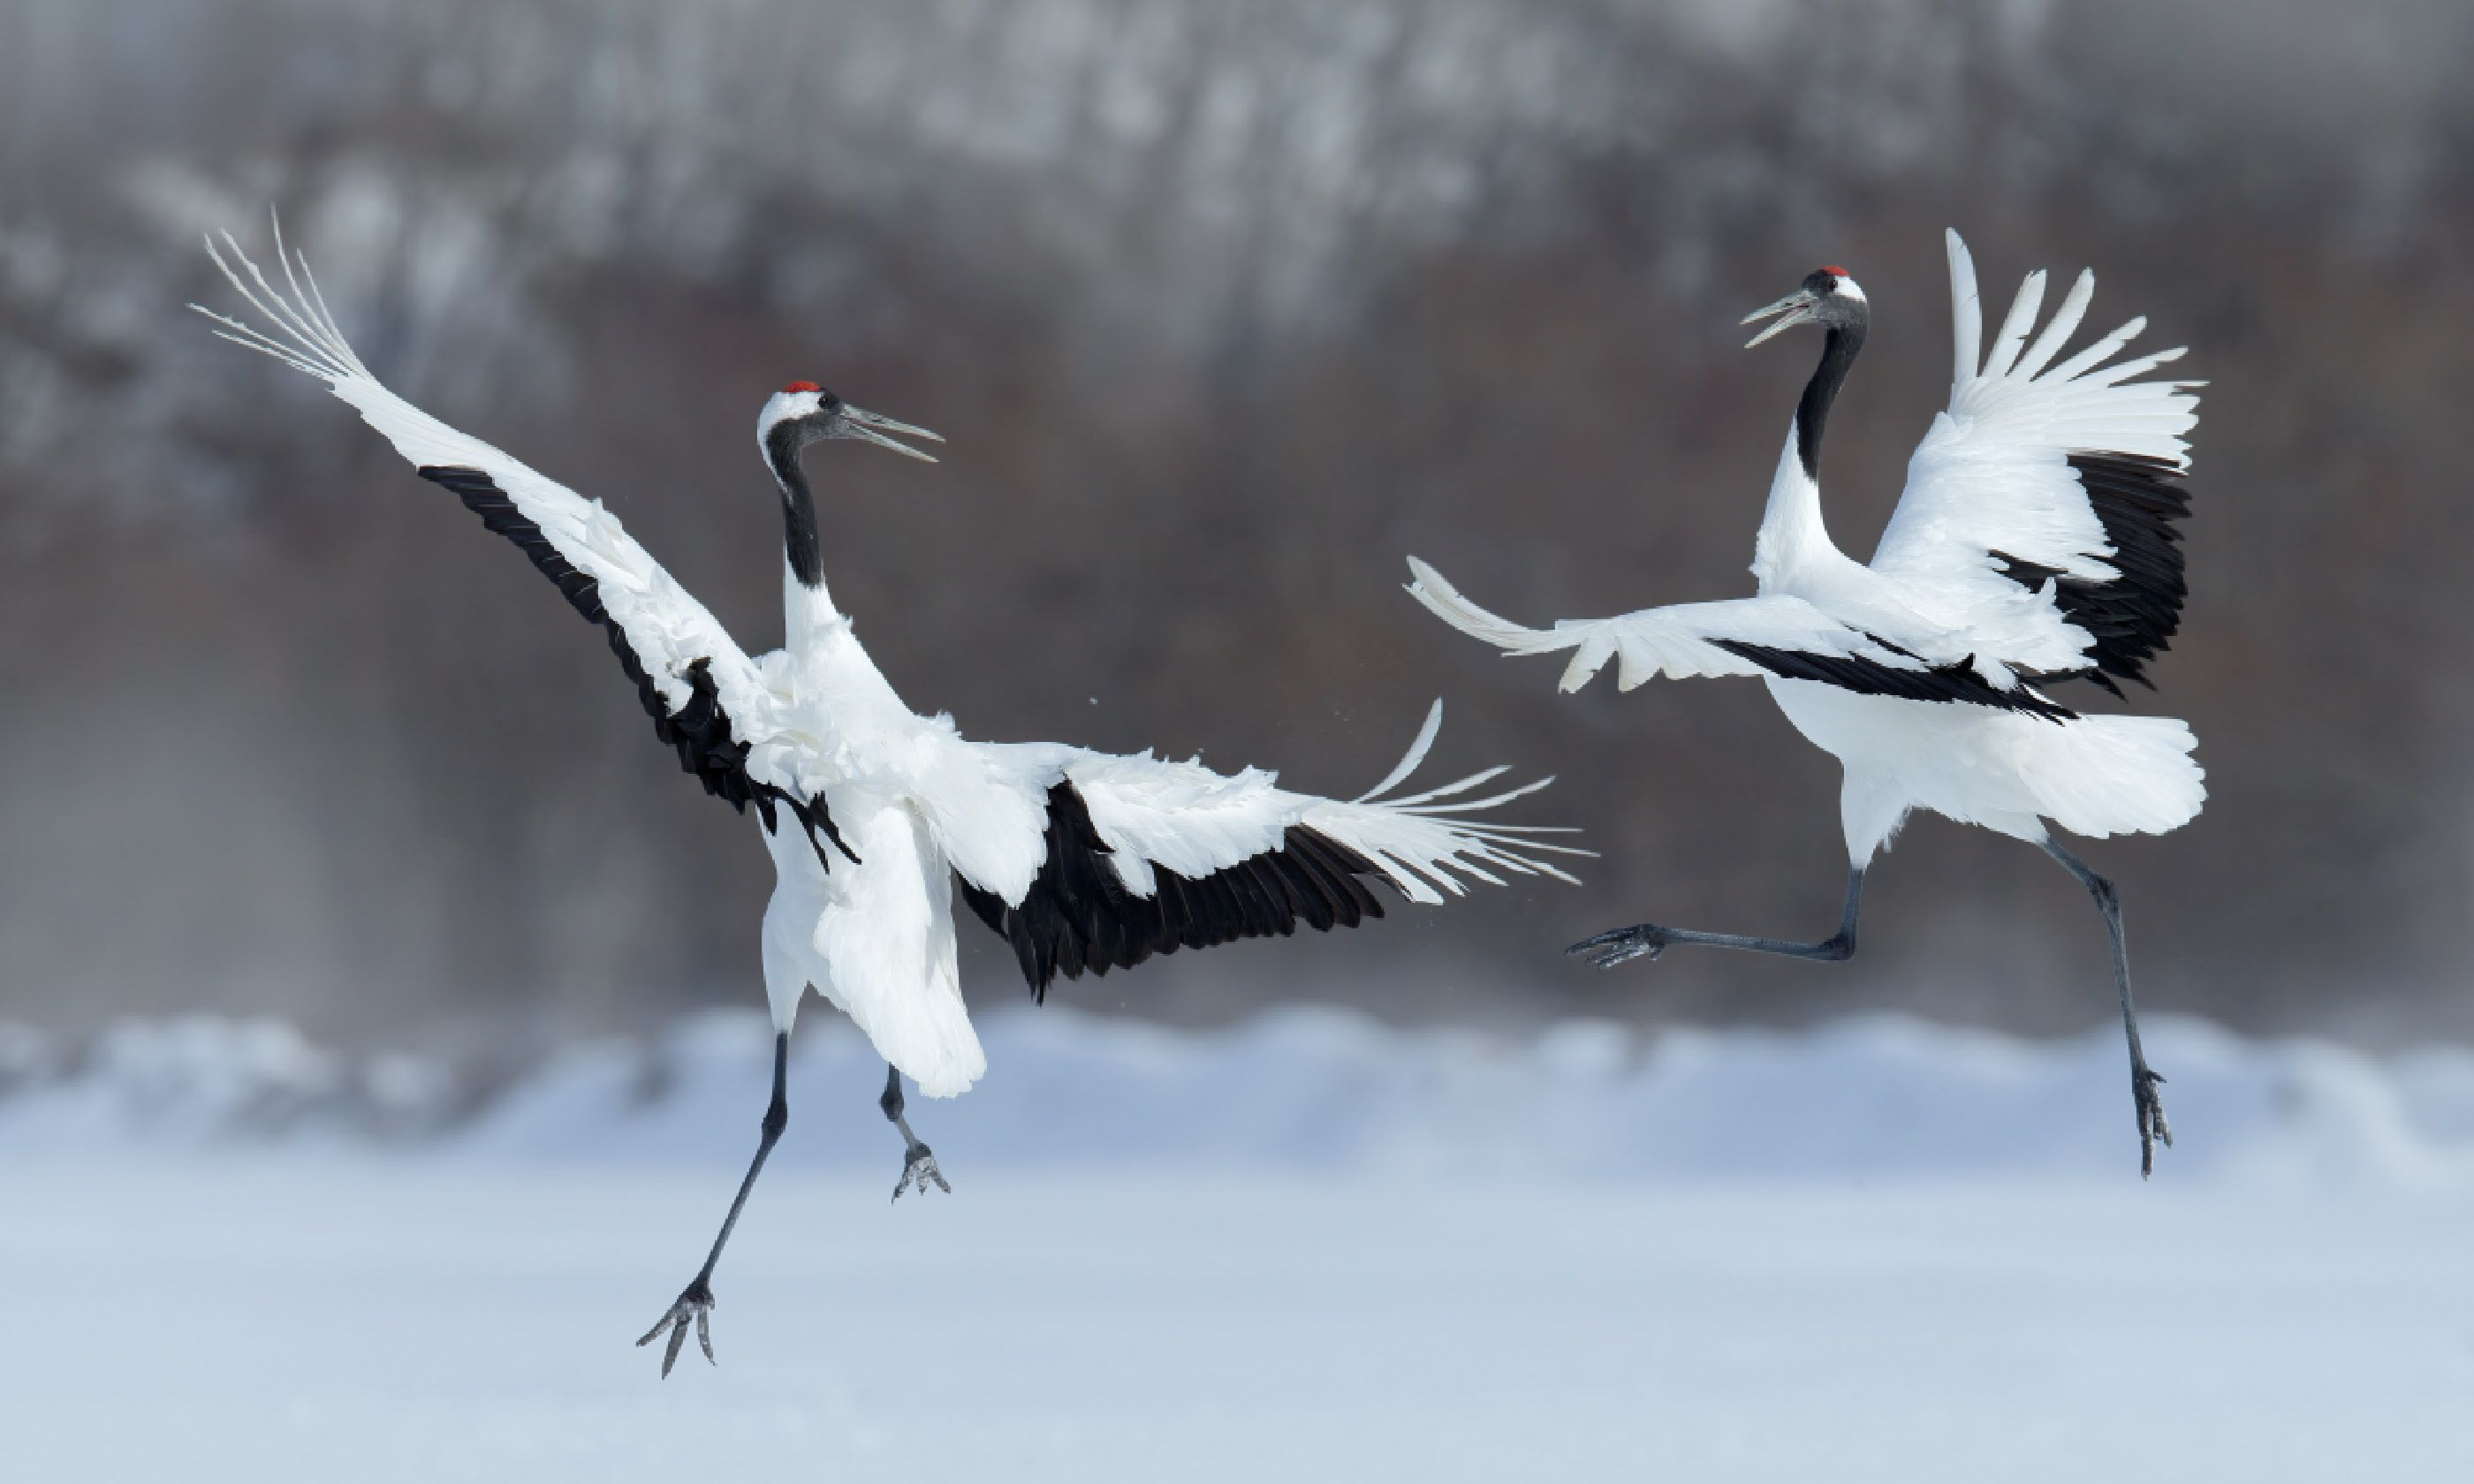 Dancing pair of red-crowned cranes (Shutterstock)